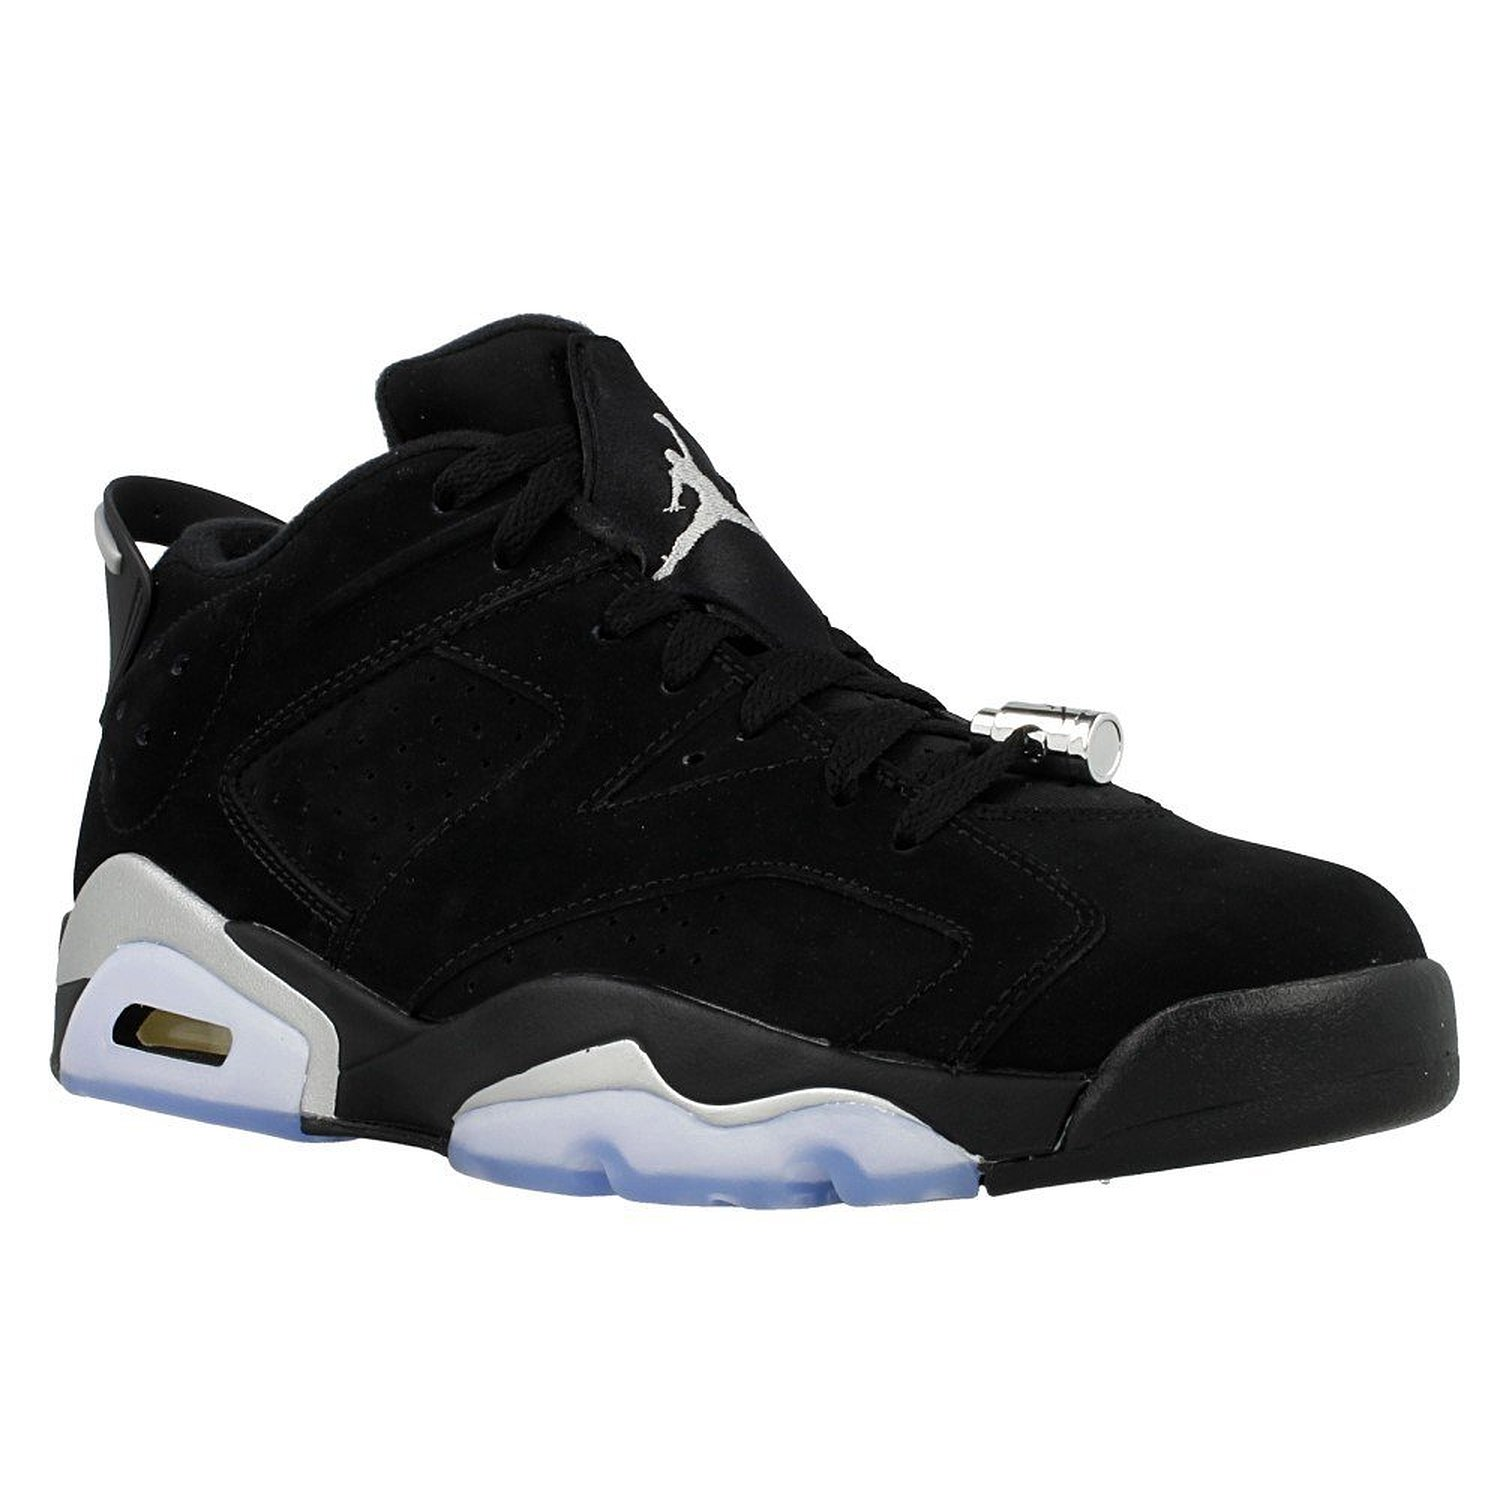 Jordan Nike Air Retro 6 Low Chrome Mens Black/Metallic Silver/White 304401-003 (15)